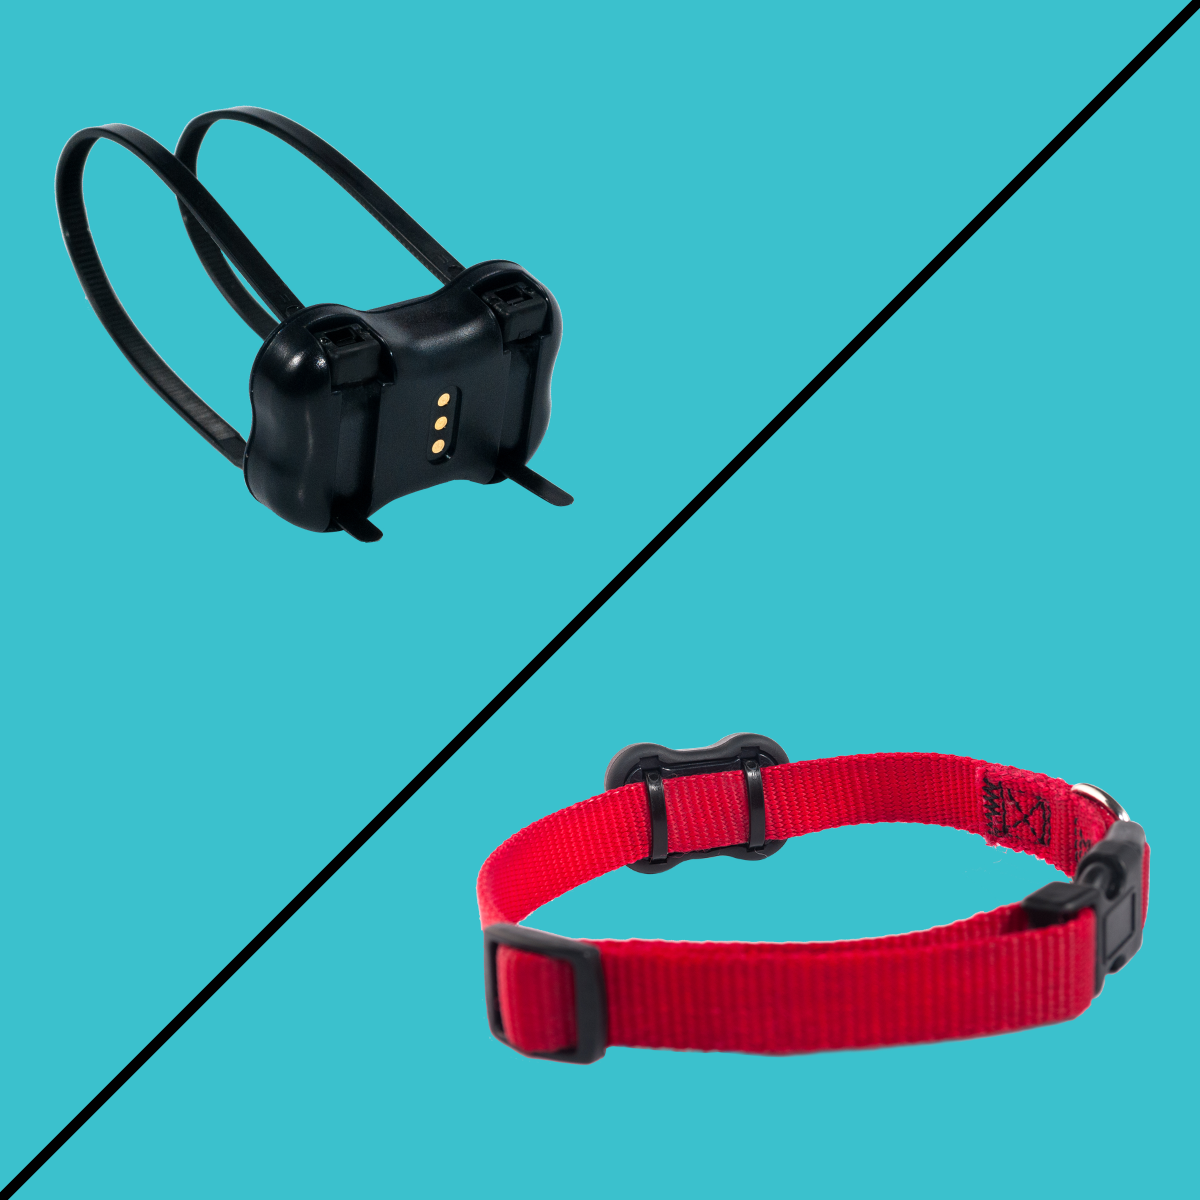 Easily attachable to your dog's collars with the help of the included Zip Ties